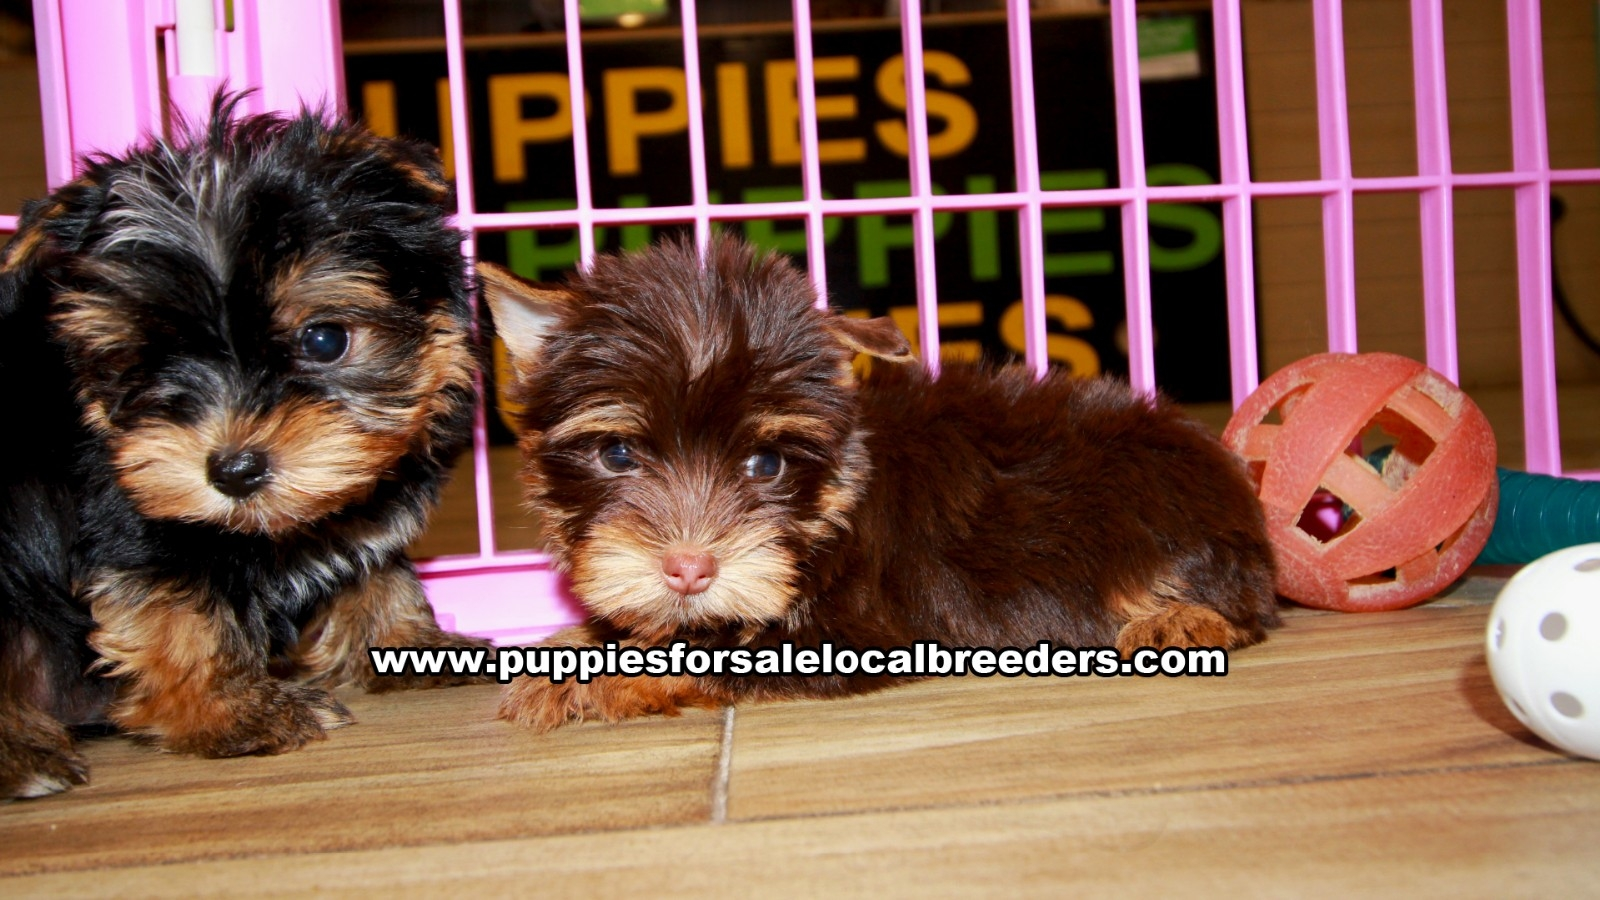 Chocolate Yorkie, Puppies For Sale In Georgia, Local Breeders, Near Atlanta, Ga